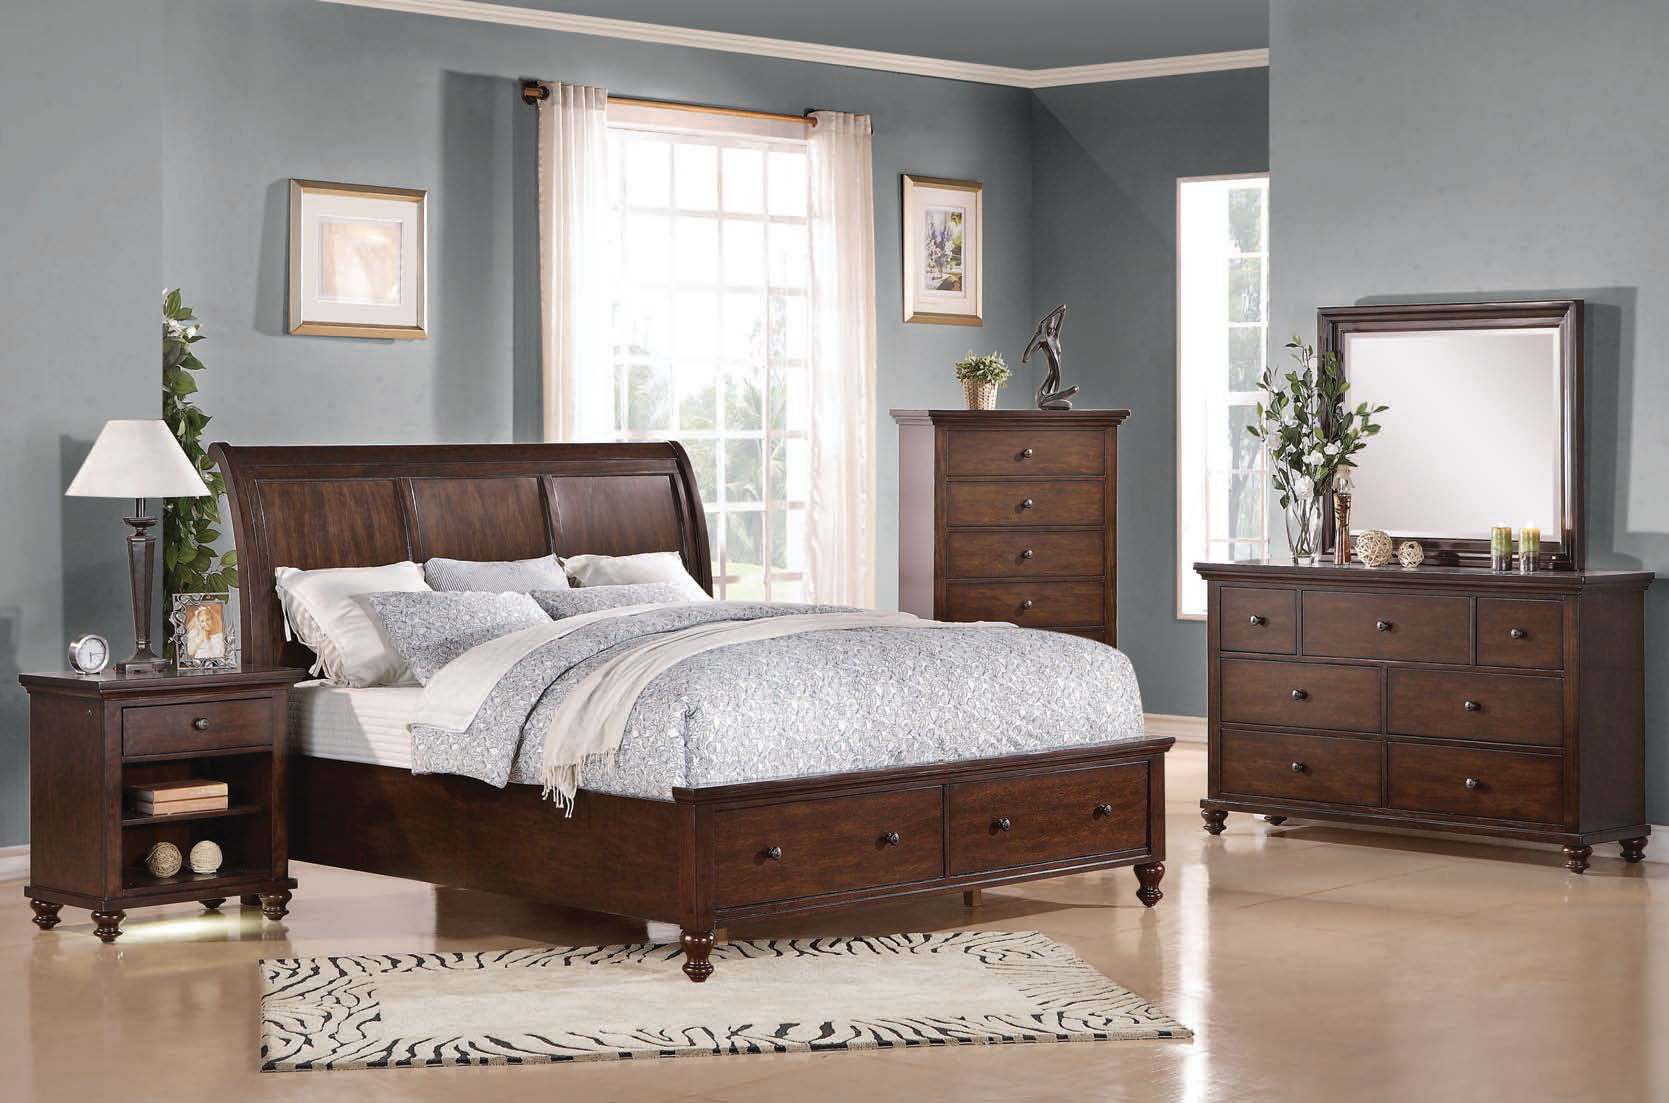 Aceline coastal brown cherry wood master bedroom set the classy home No dresser in master bedroom